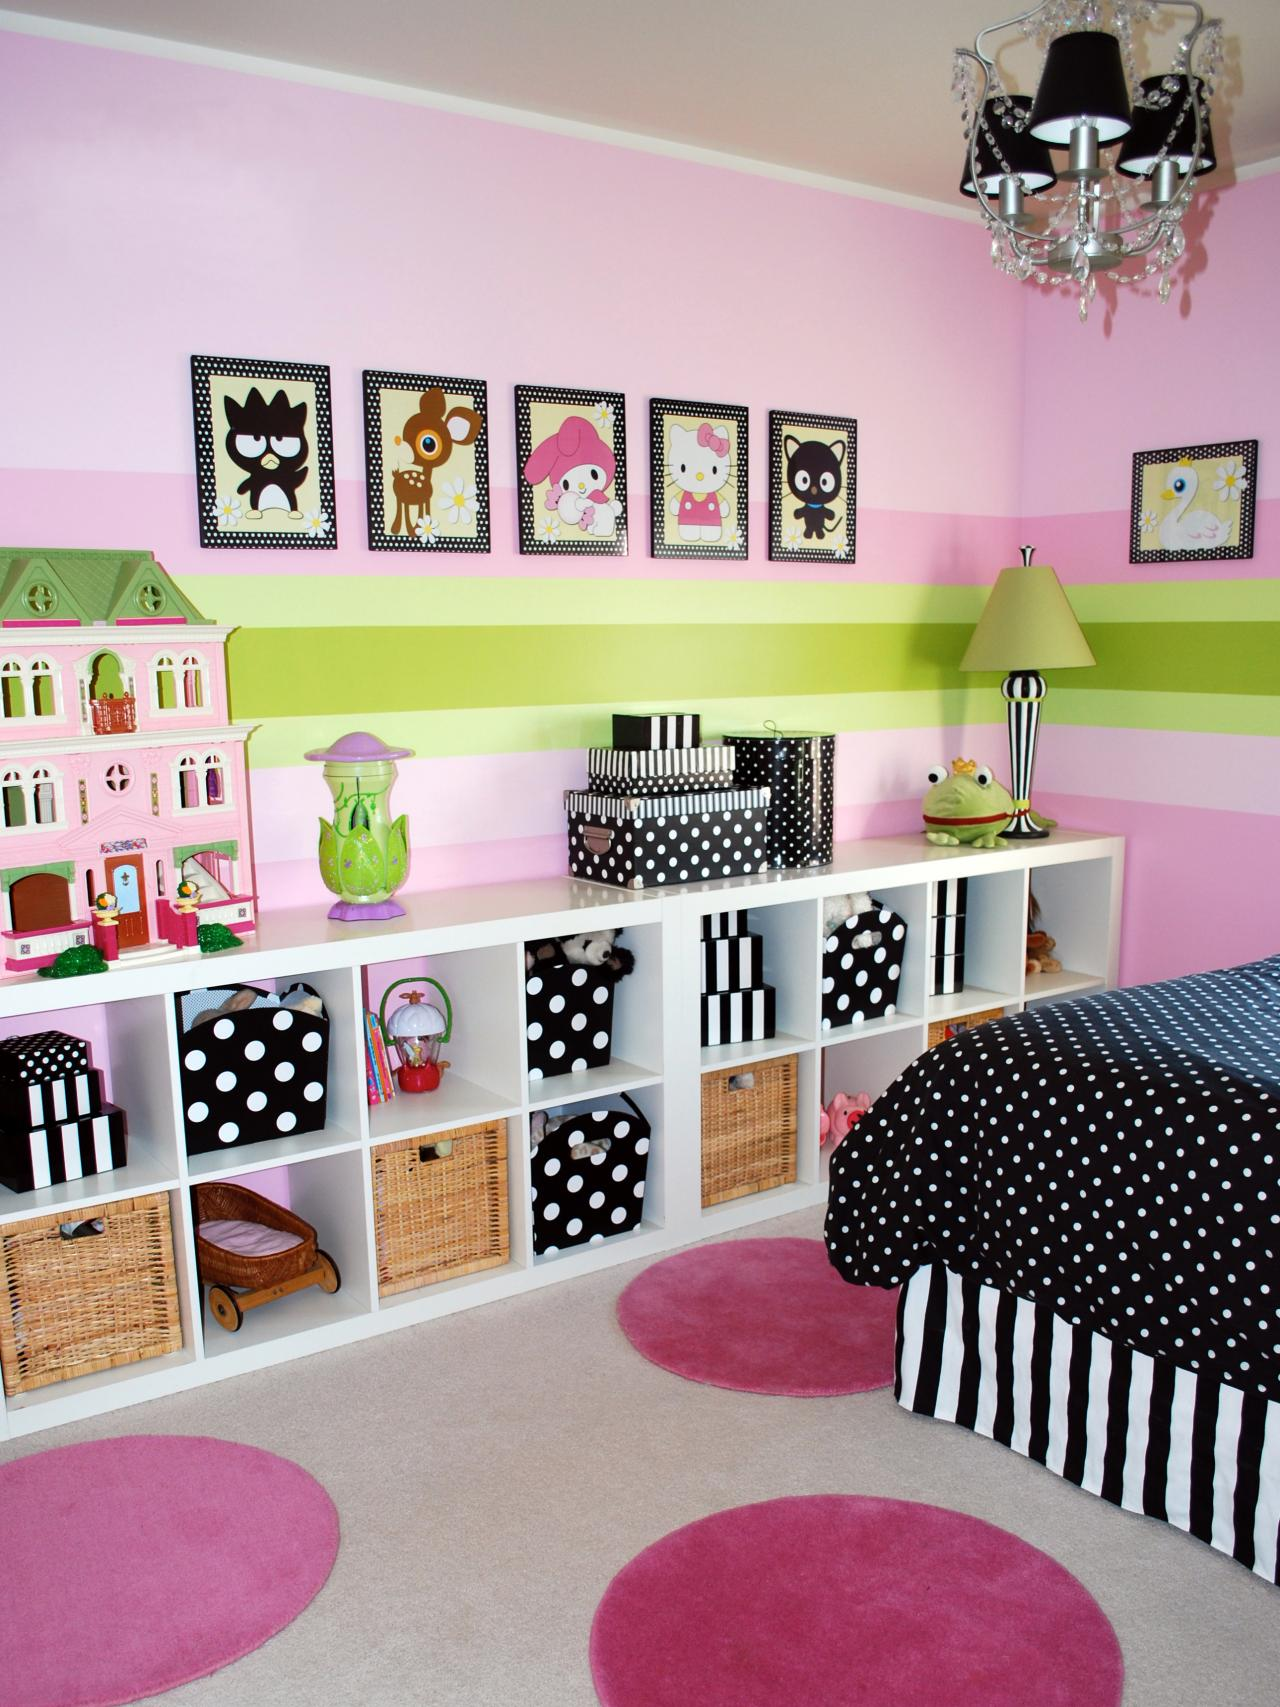 10 decorating ideas for kids 39 rooms hgtv - Room decor ideas for girls ...